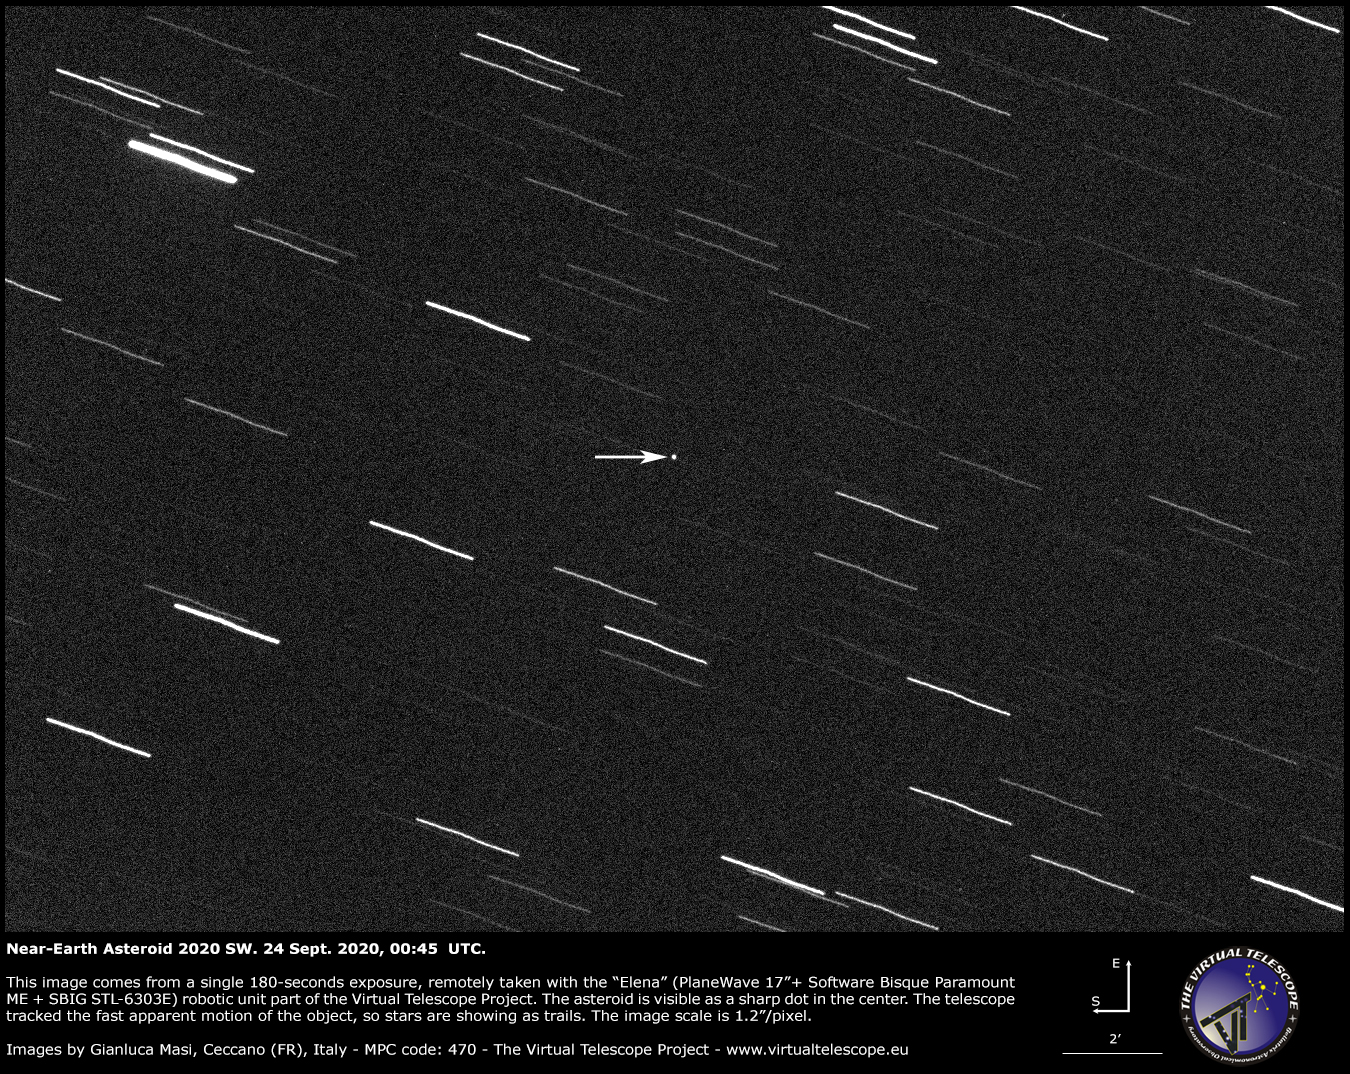 Near-Earth asteroid 2020 SW. 24 Sept. 2020.